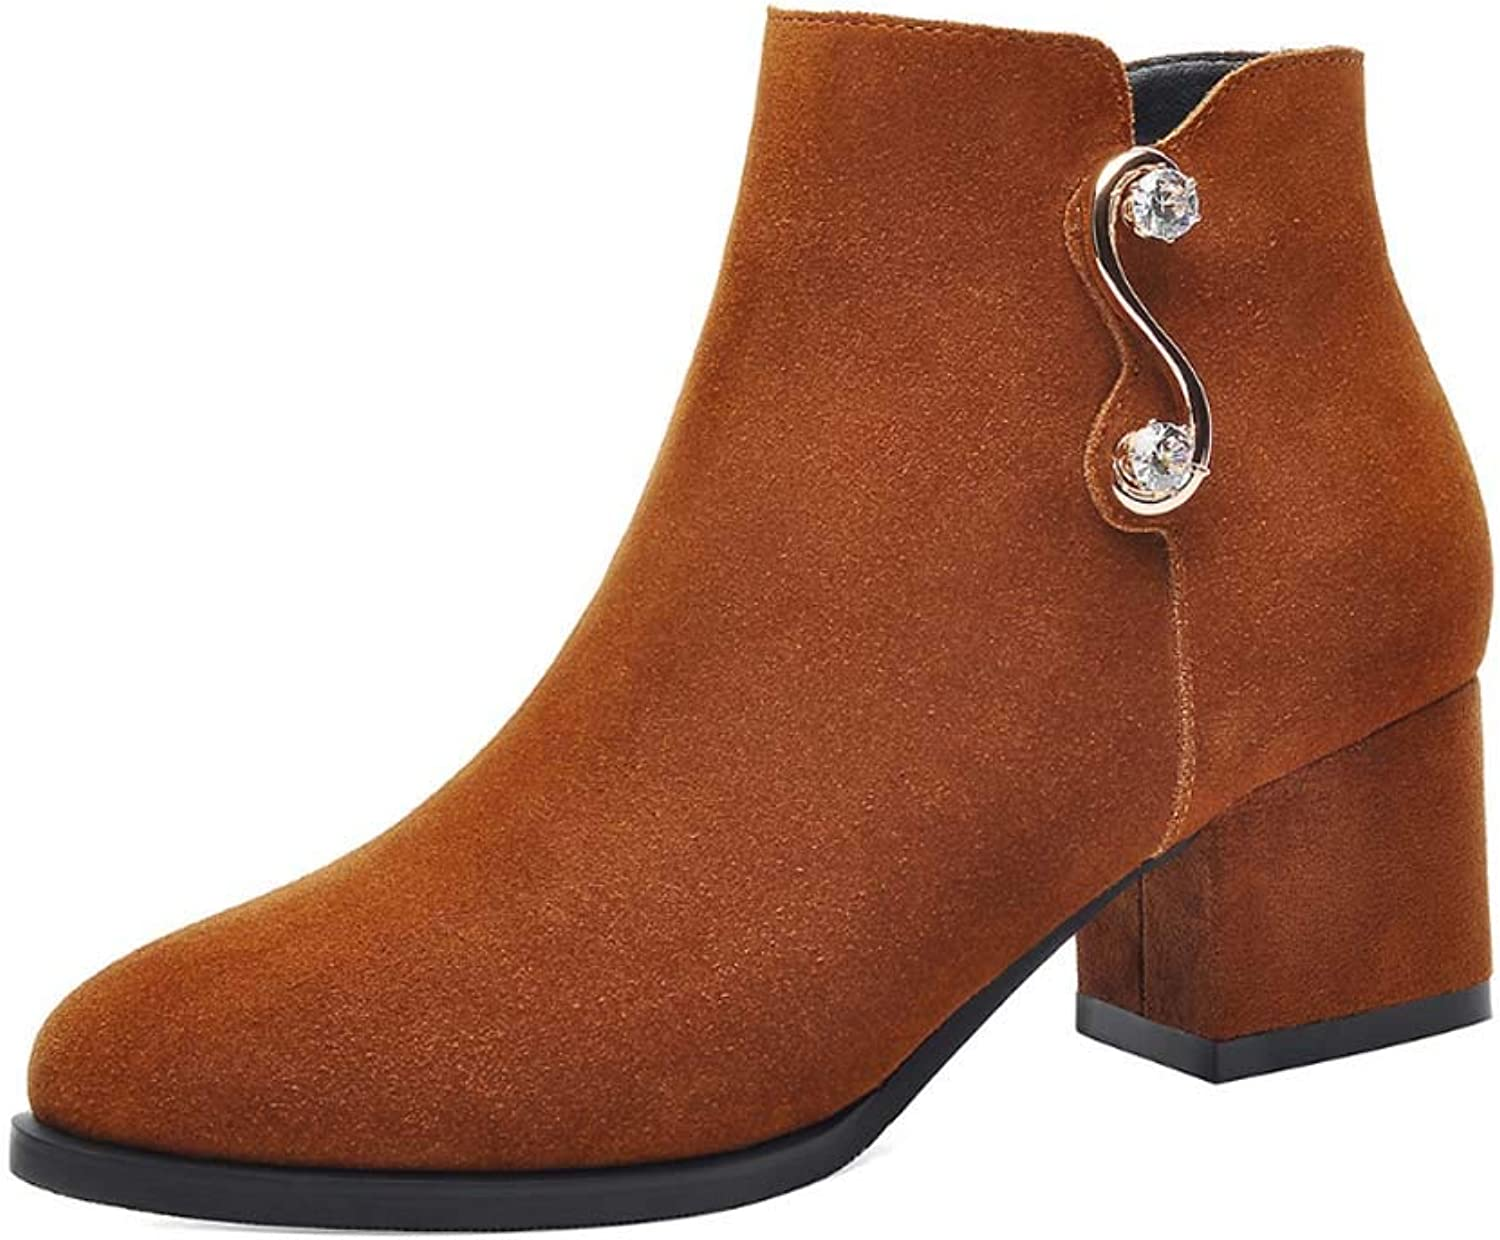 Women Ankle Boots,Chunky Zipper Short Thick Boot Footwear Suede Round Toe Ankle shoes,Zipper Chelsea Boots